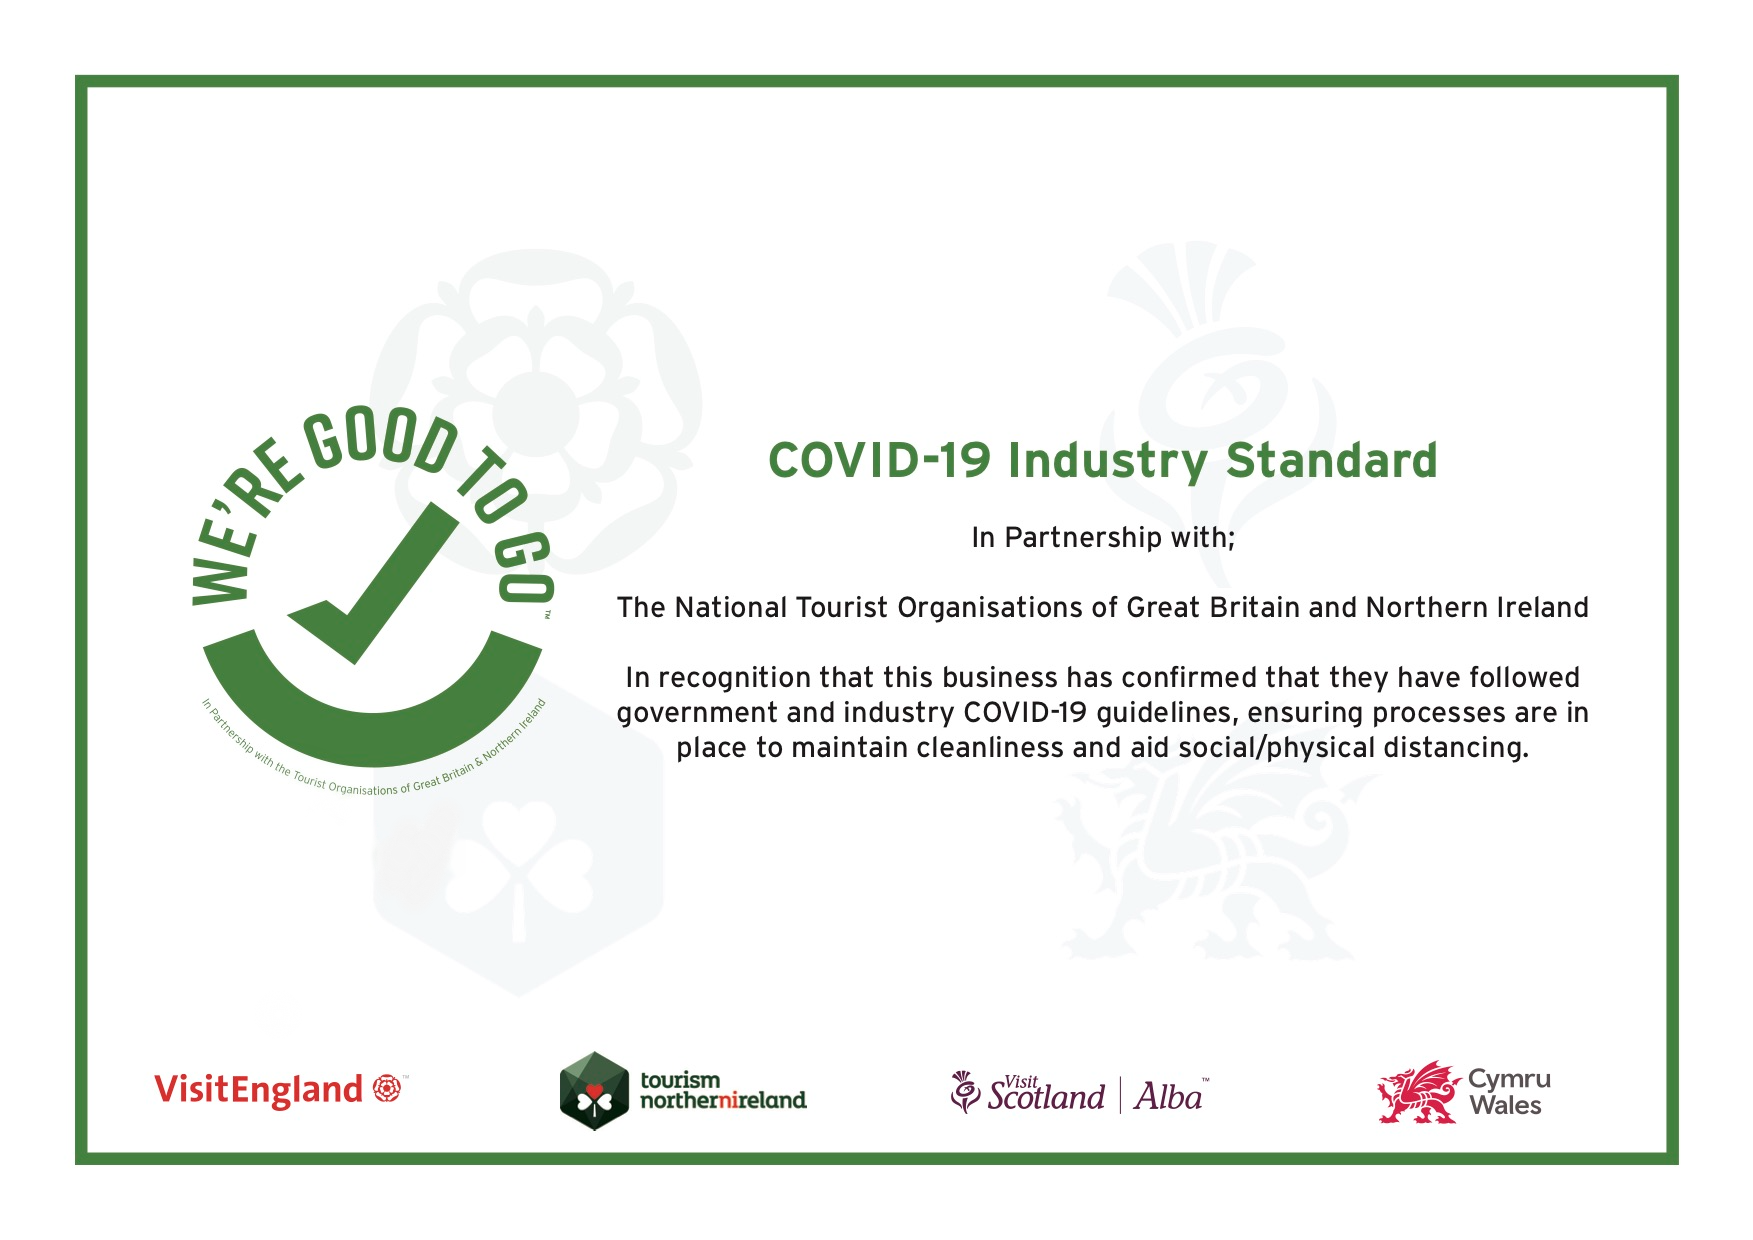 Covid-19 Industry Certificate